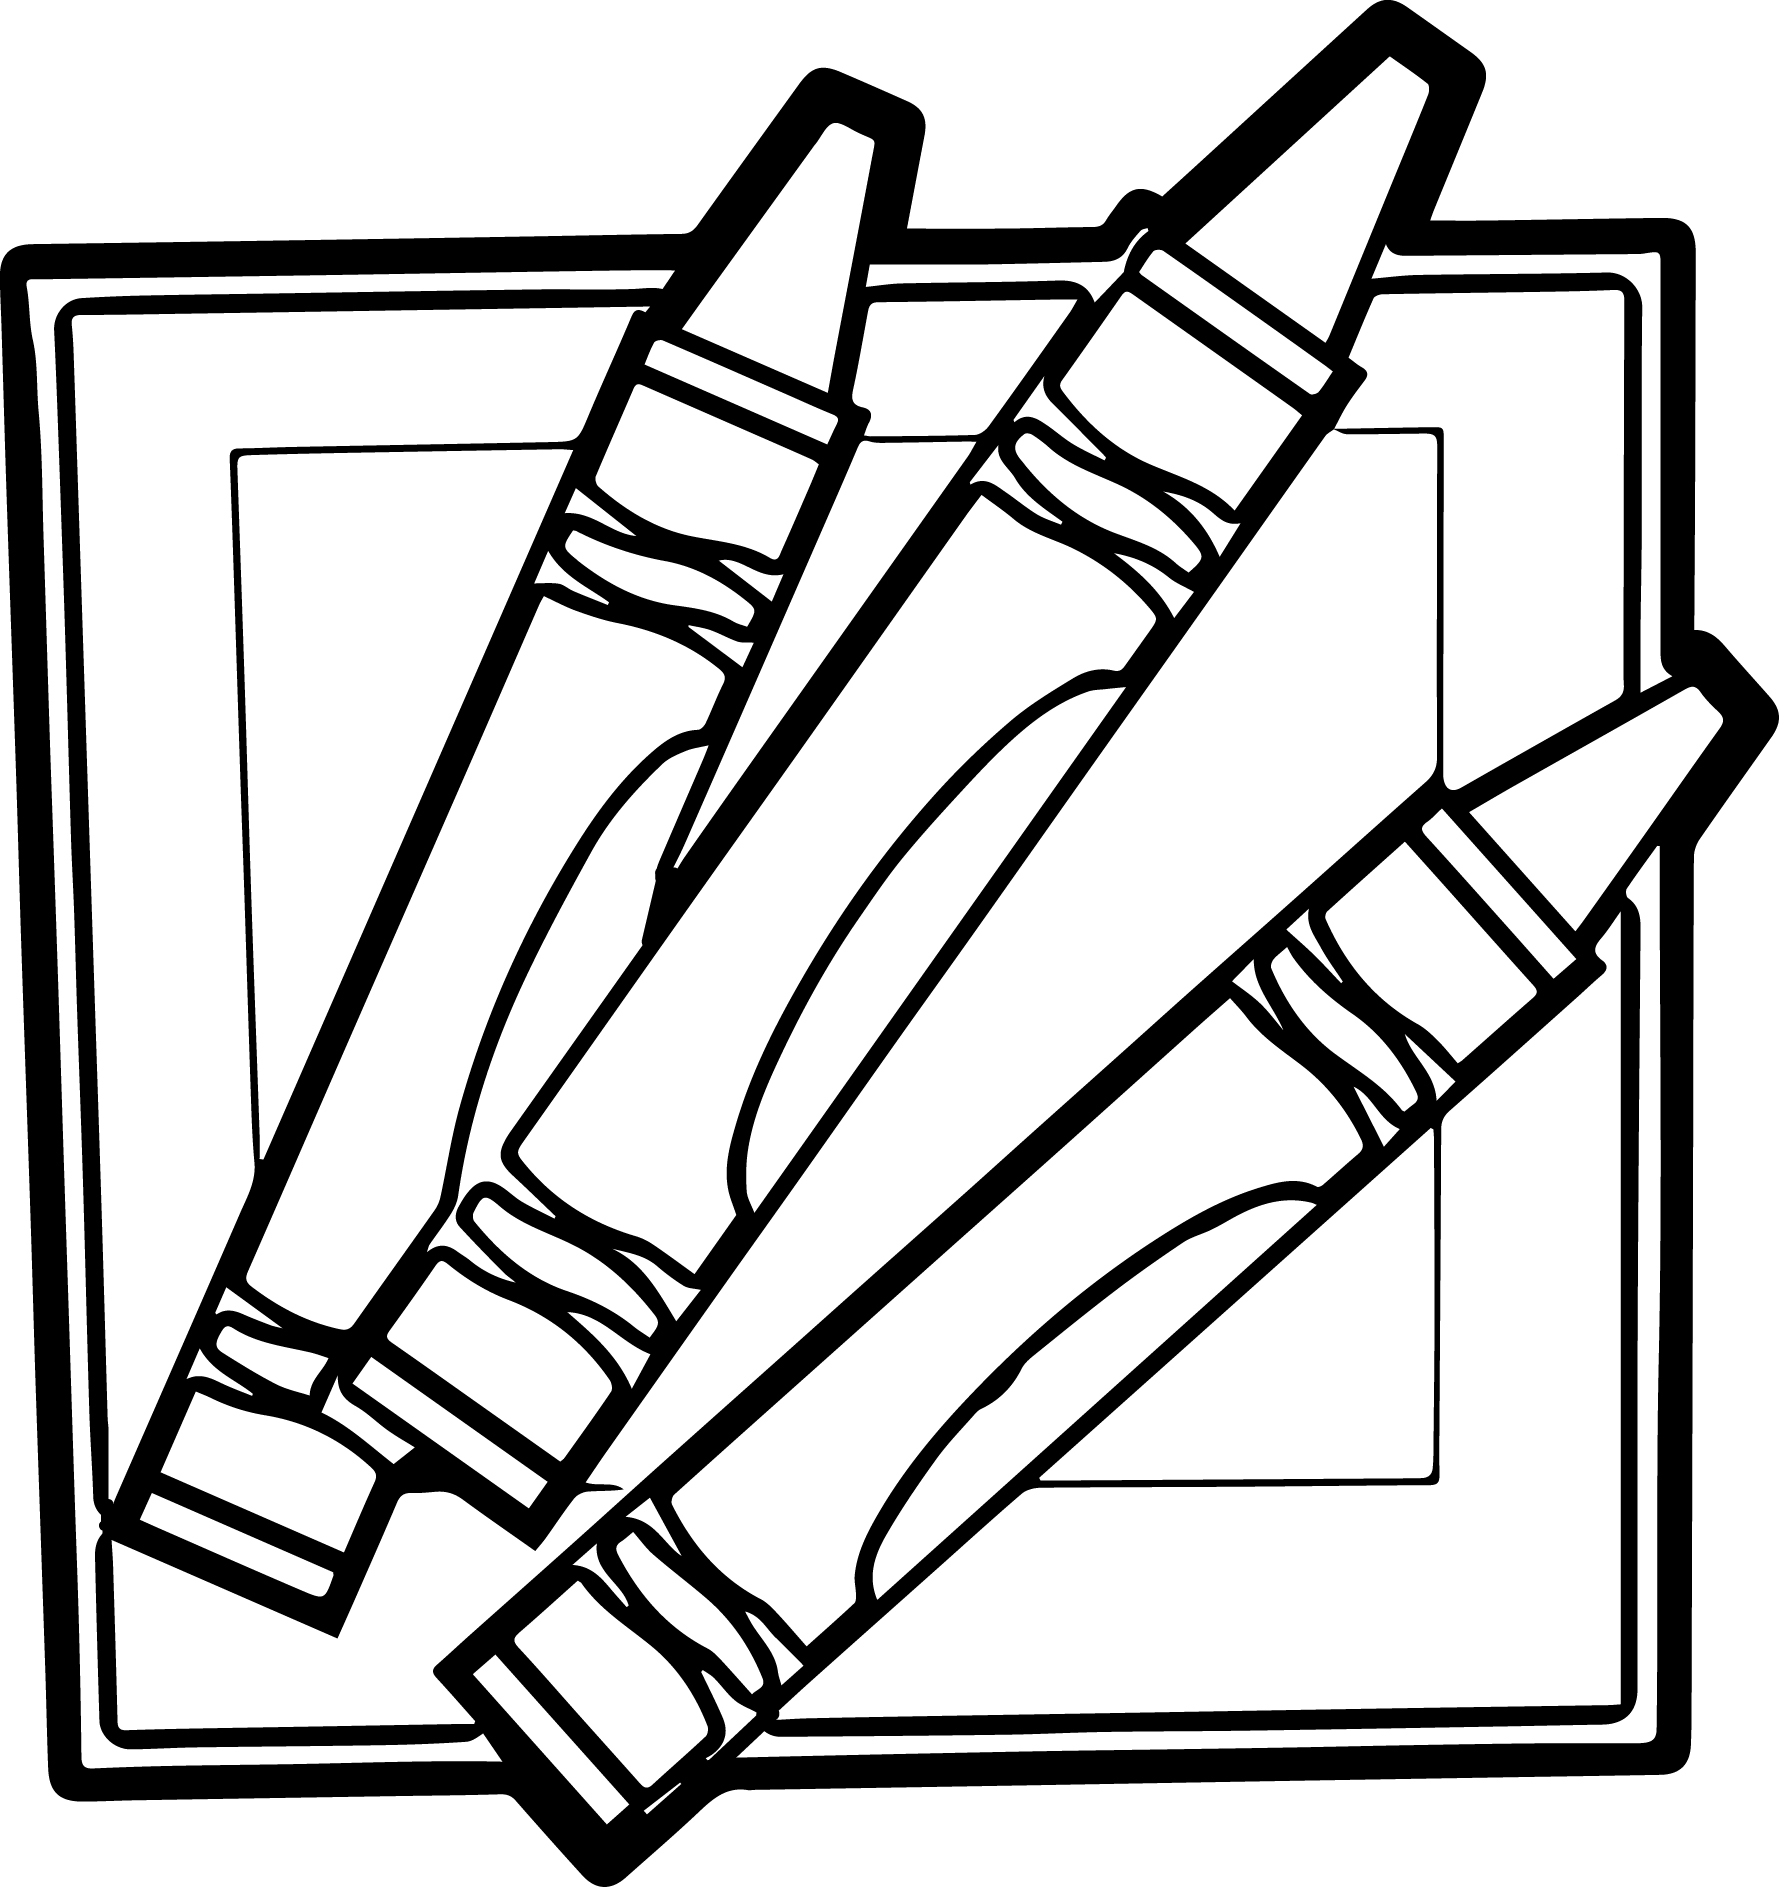 pens coloring pages for children - photo#12